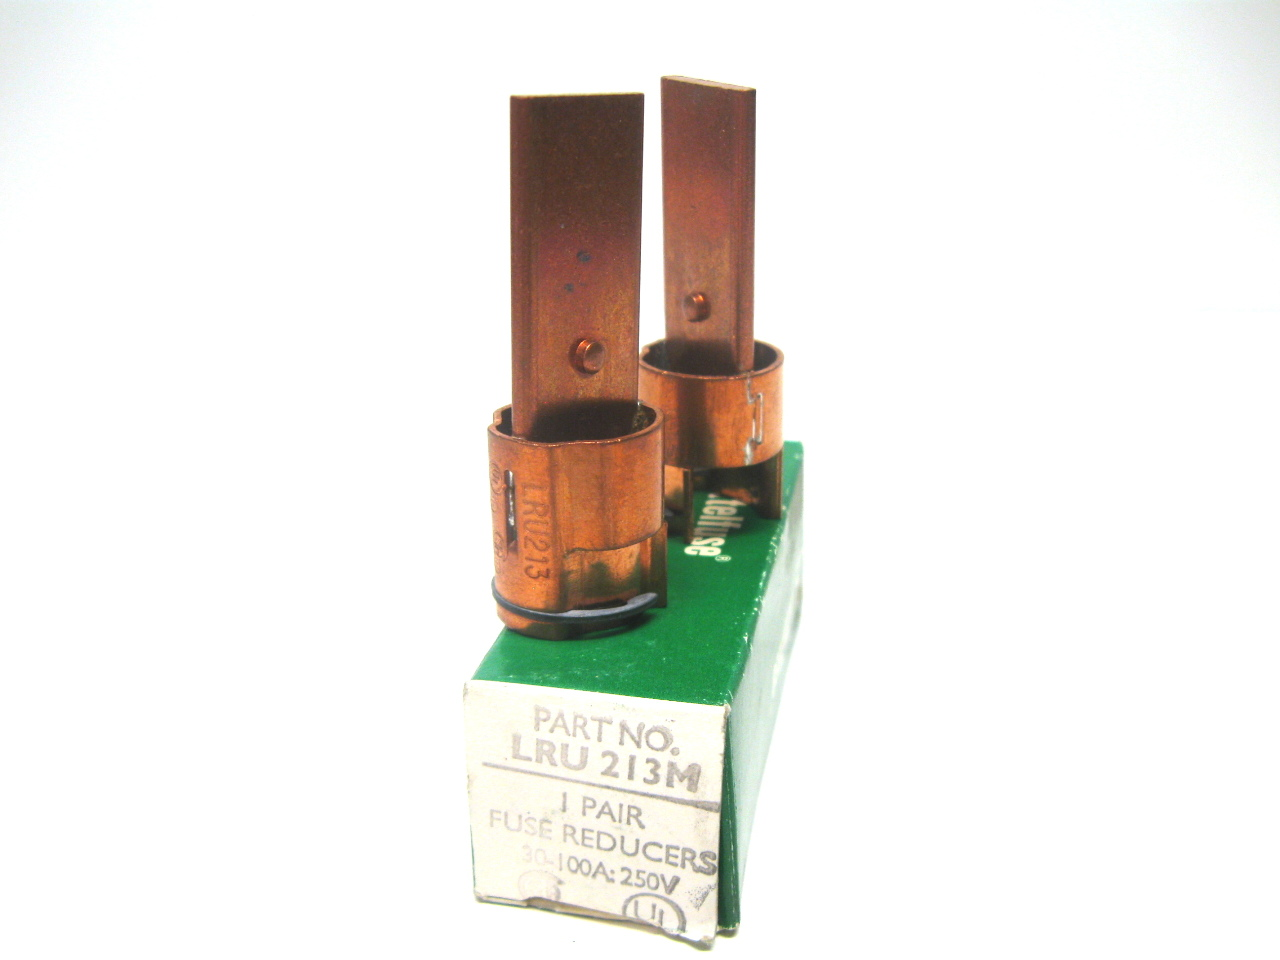 littelfuse lru213m fuse reducer 30 100 amp 250 v new in box ebay